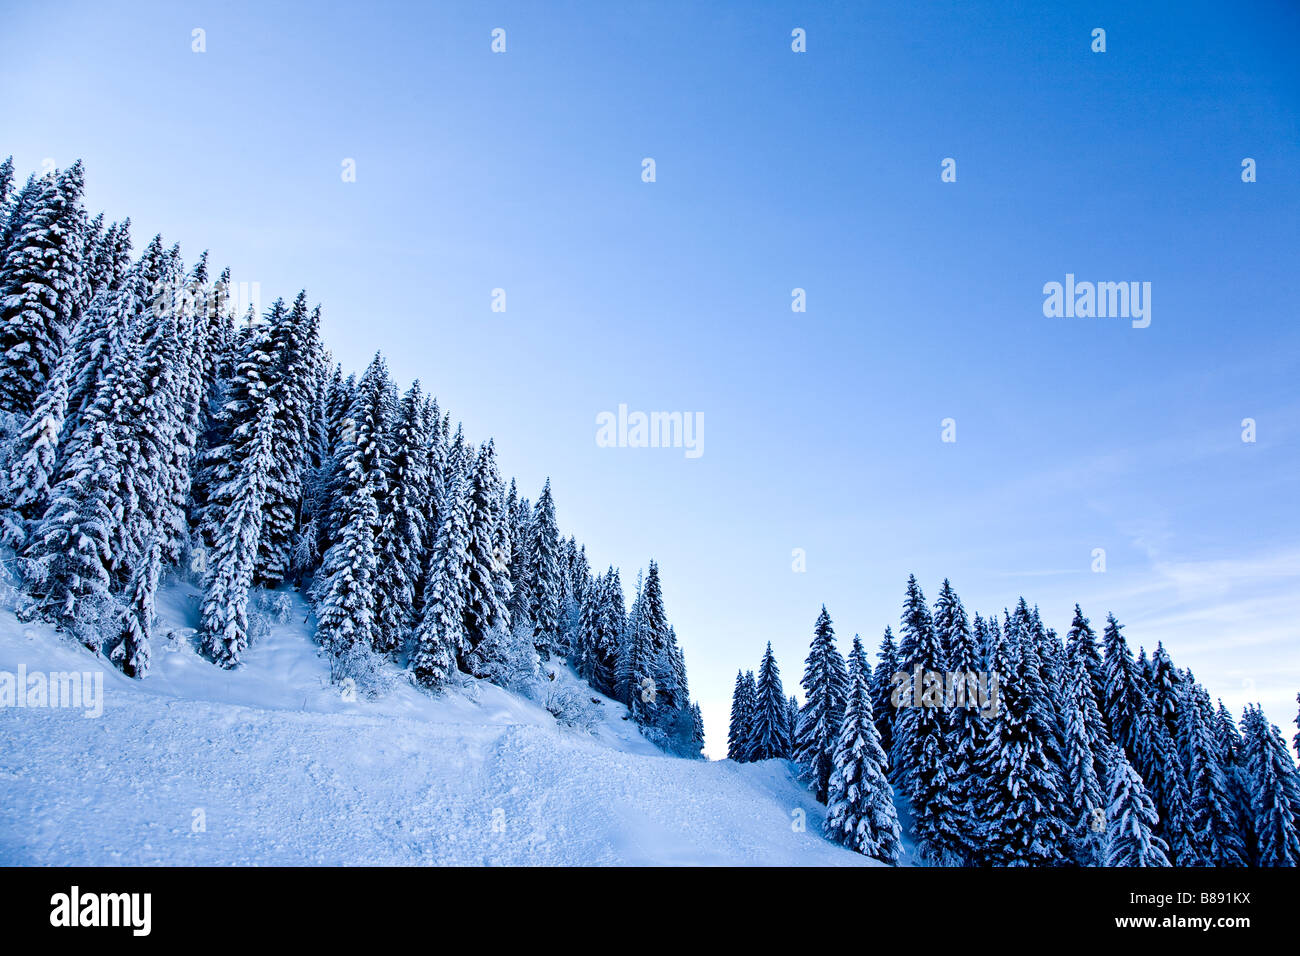 Dramatic alpine scenery with snow covered piste and trees Les Saises French Alpes - Stock Image